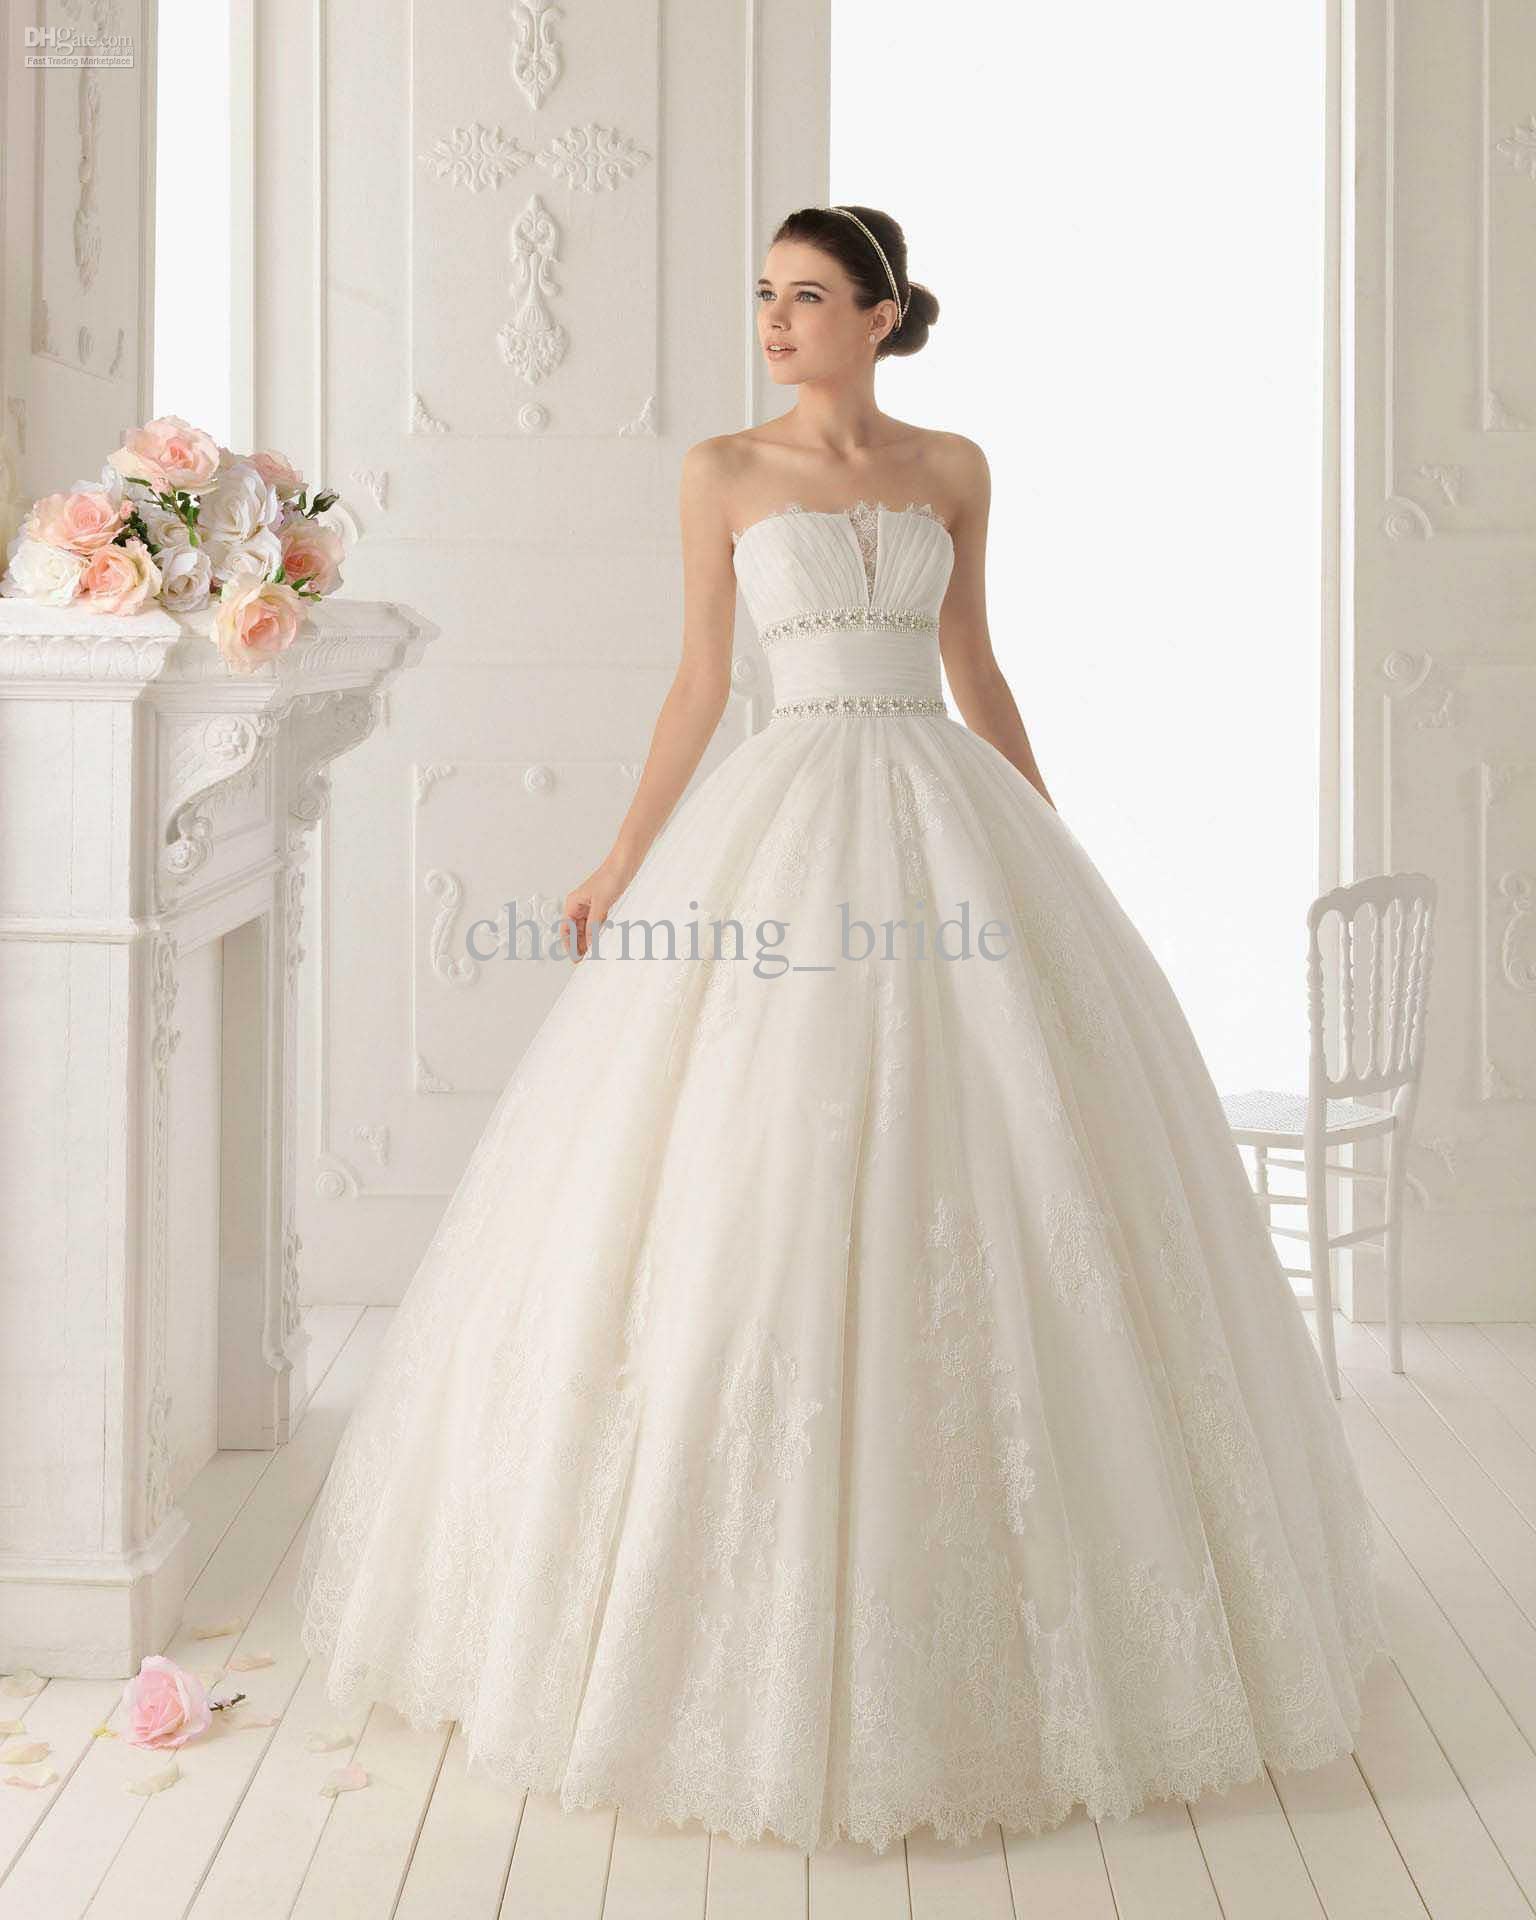 Cream Colored Ball Gown Style Wedding Dress <3 | Weddings ...